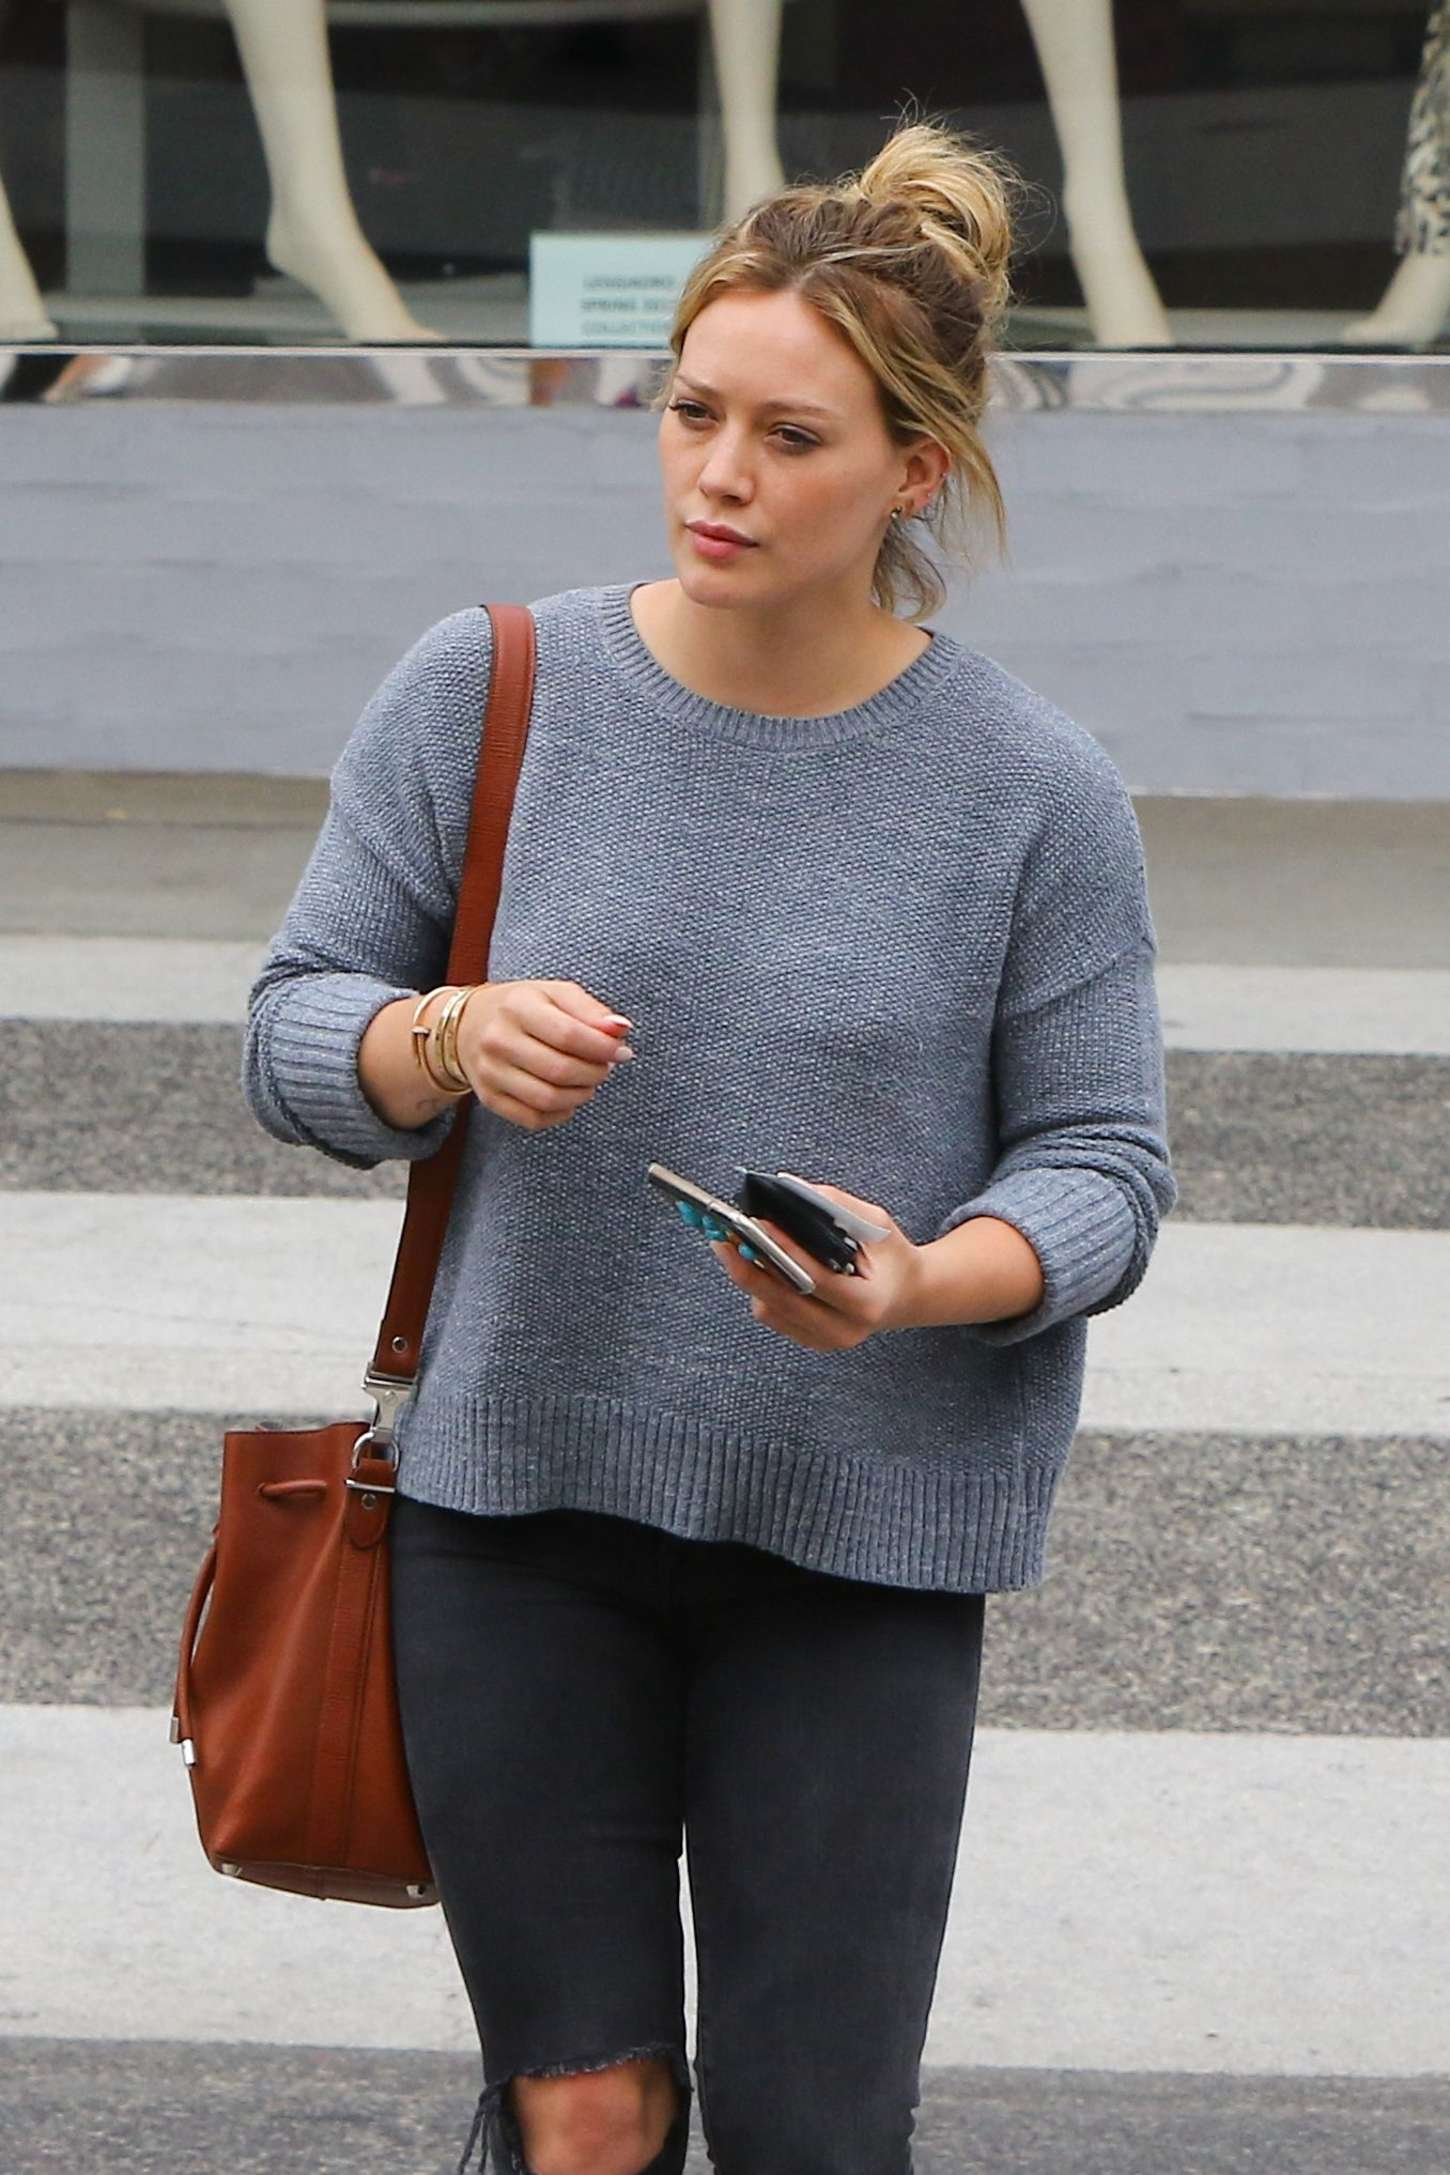 Hilary Duff in Ripped Jeans out for lunch in Beverly Hills